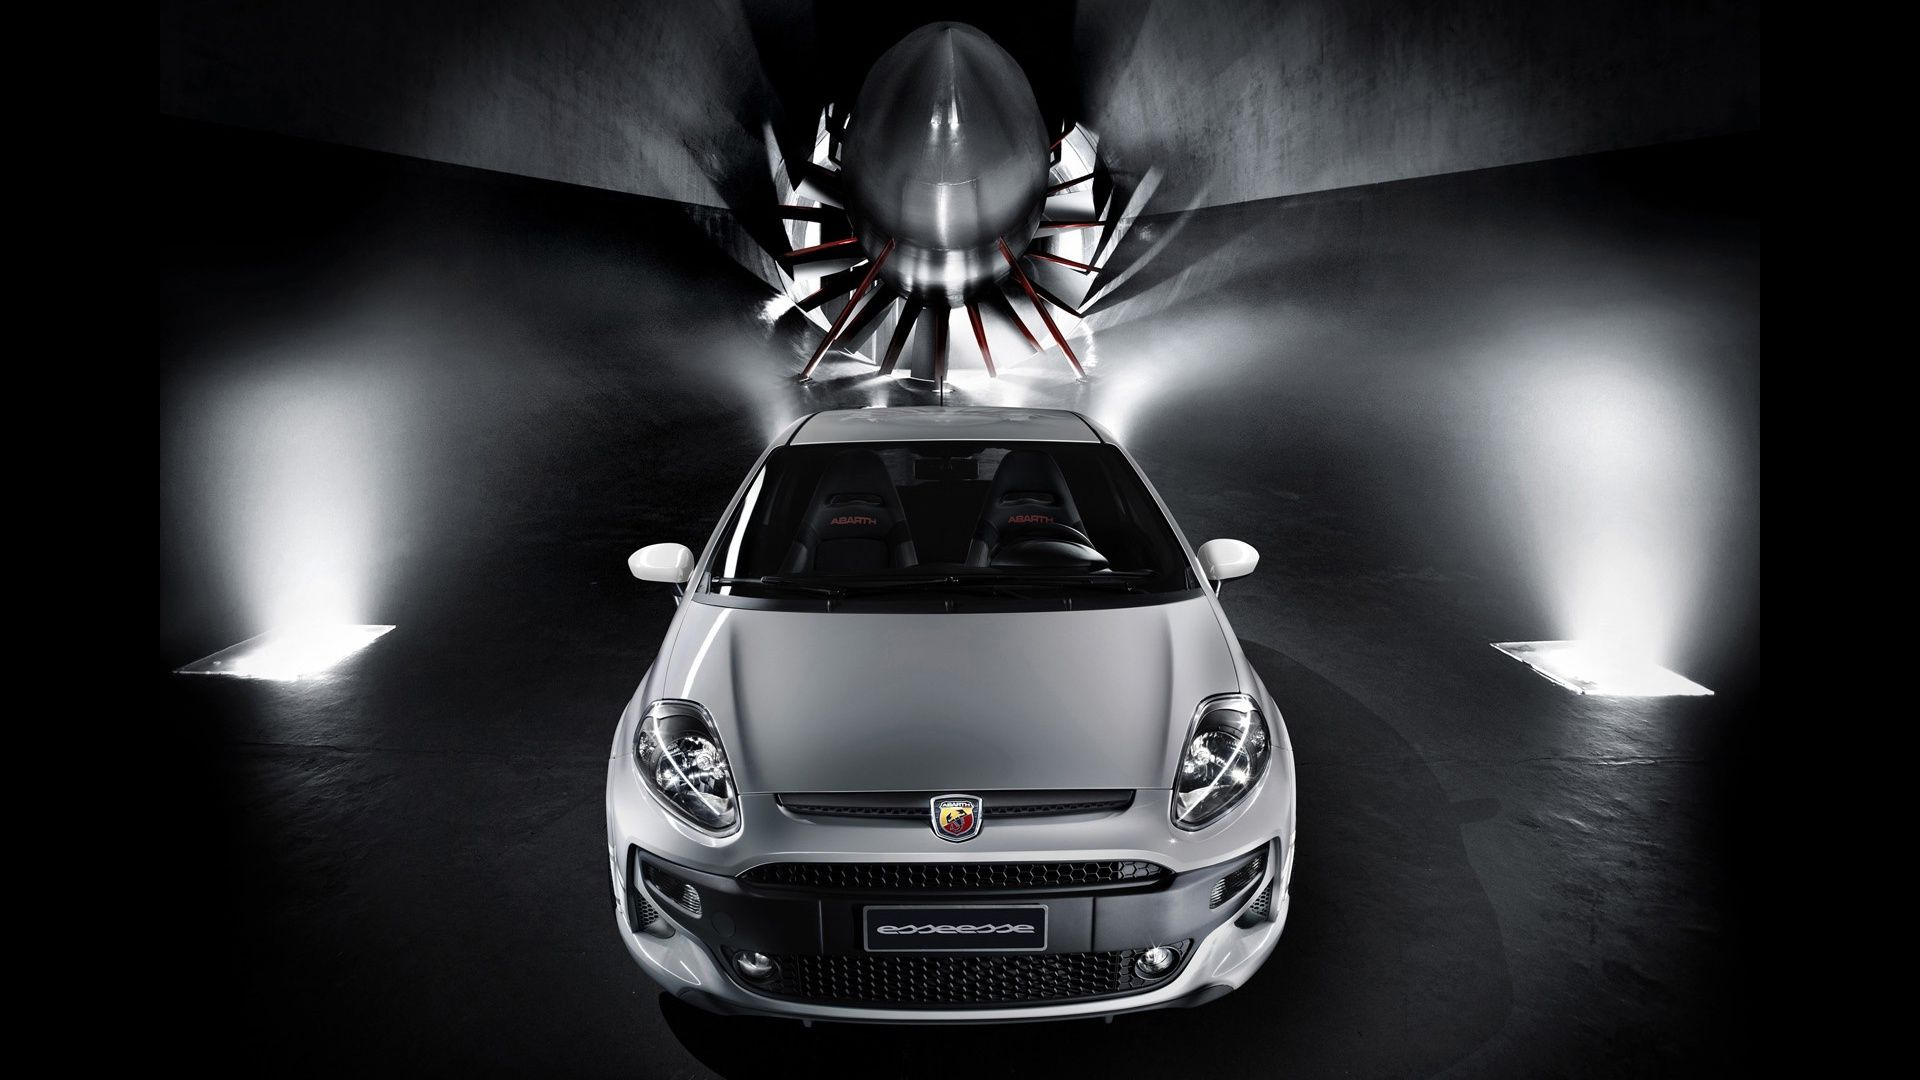 fiat-abarth-punto-evo-esseesse for more go to: http://www